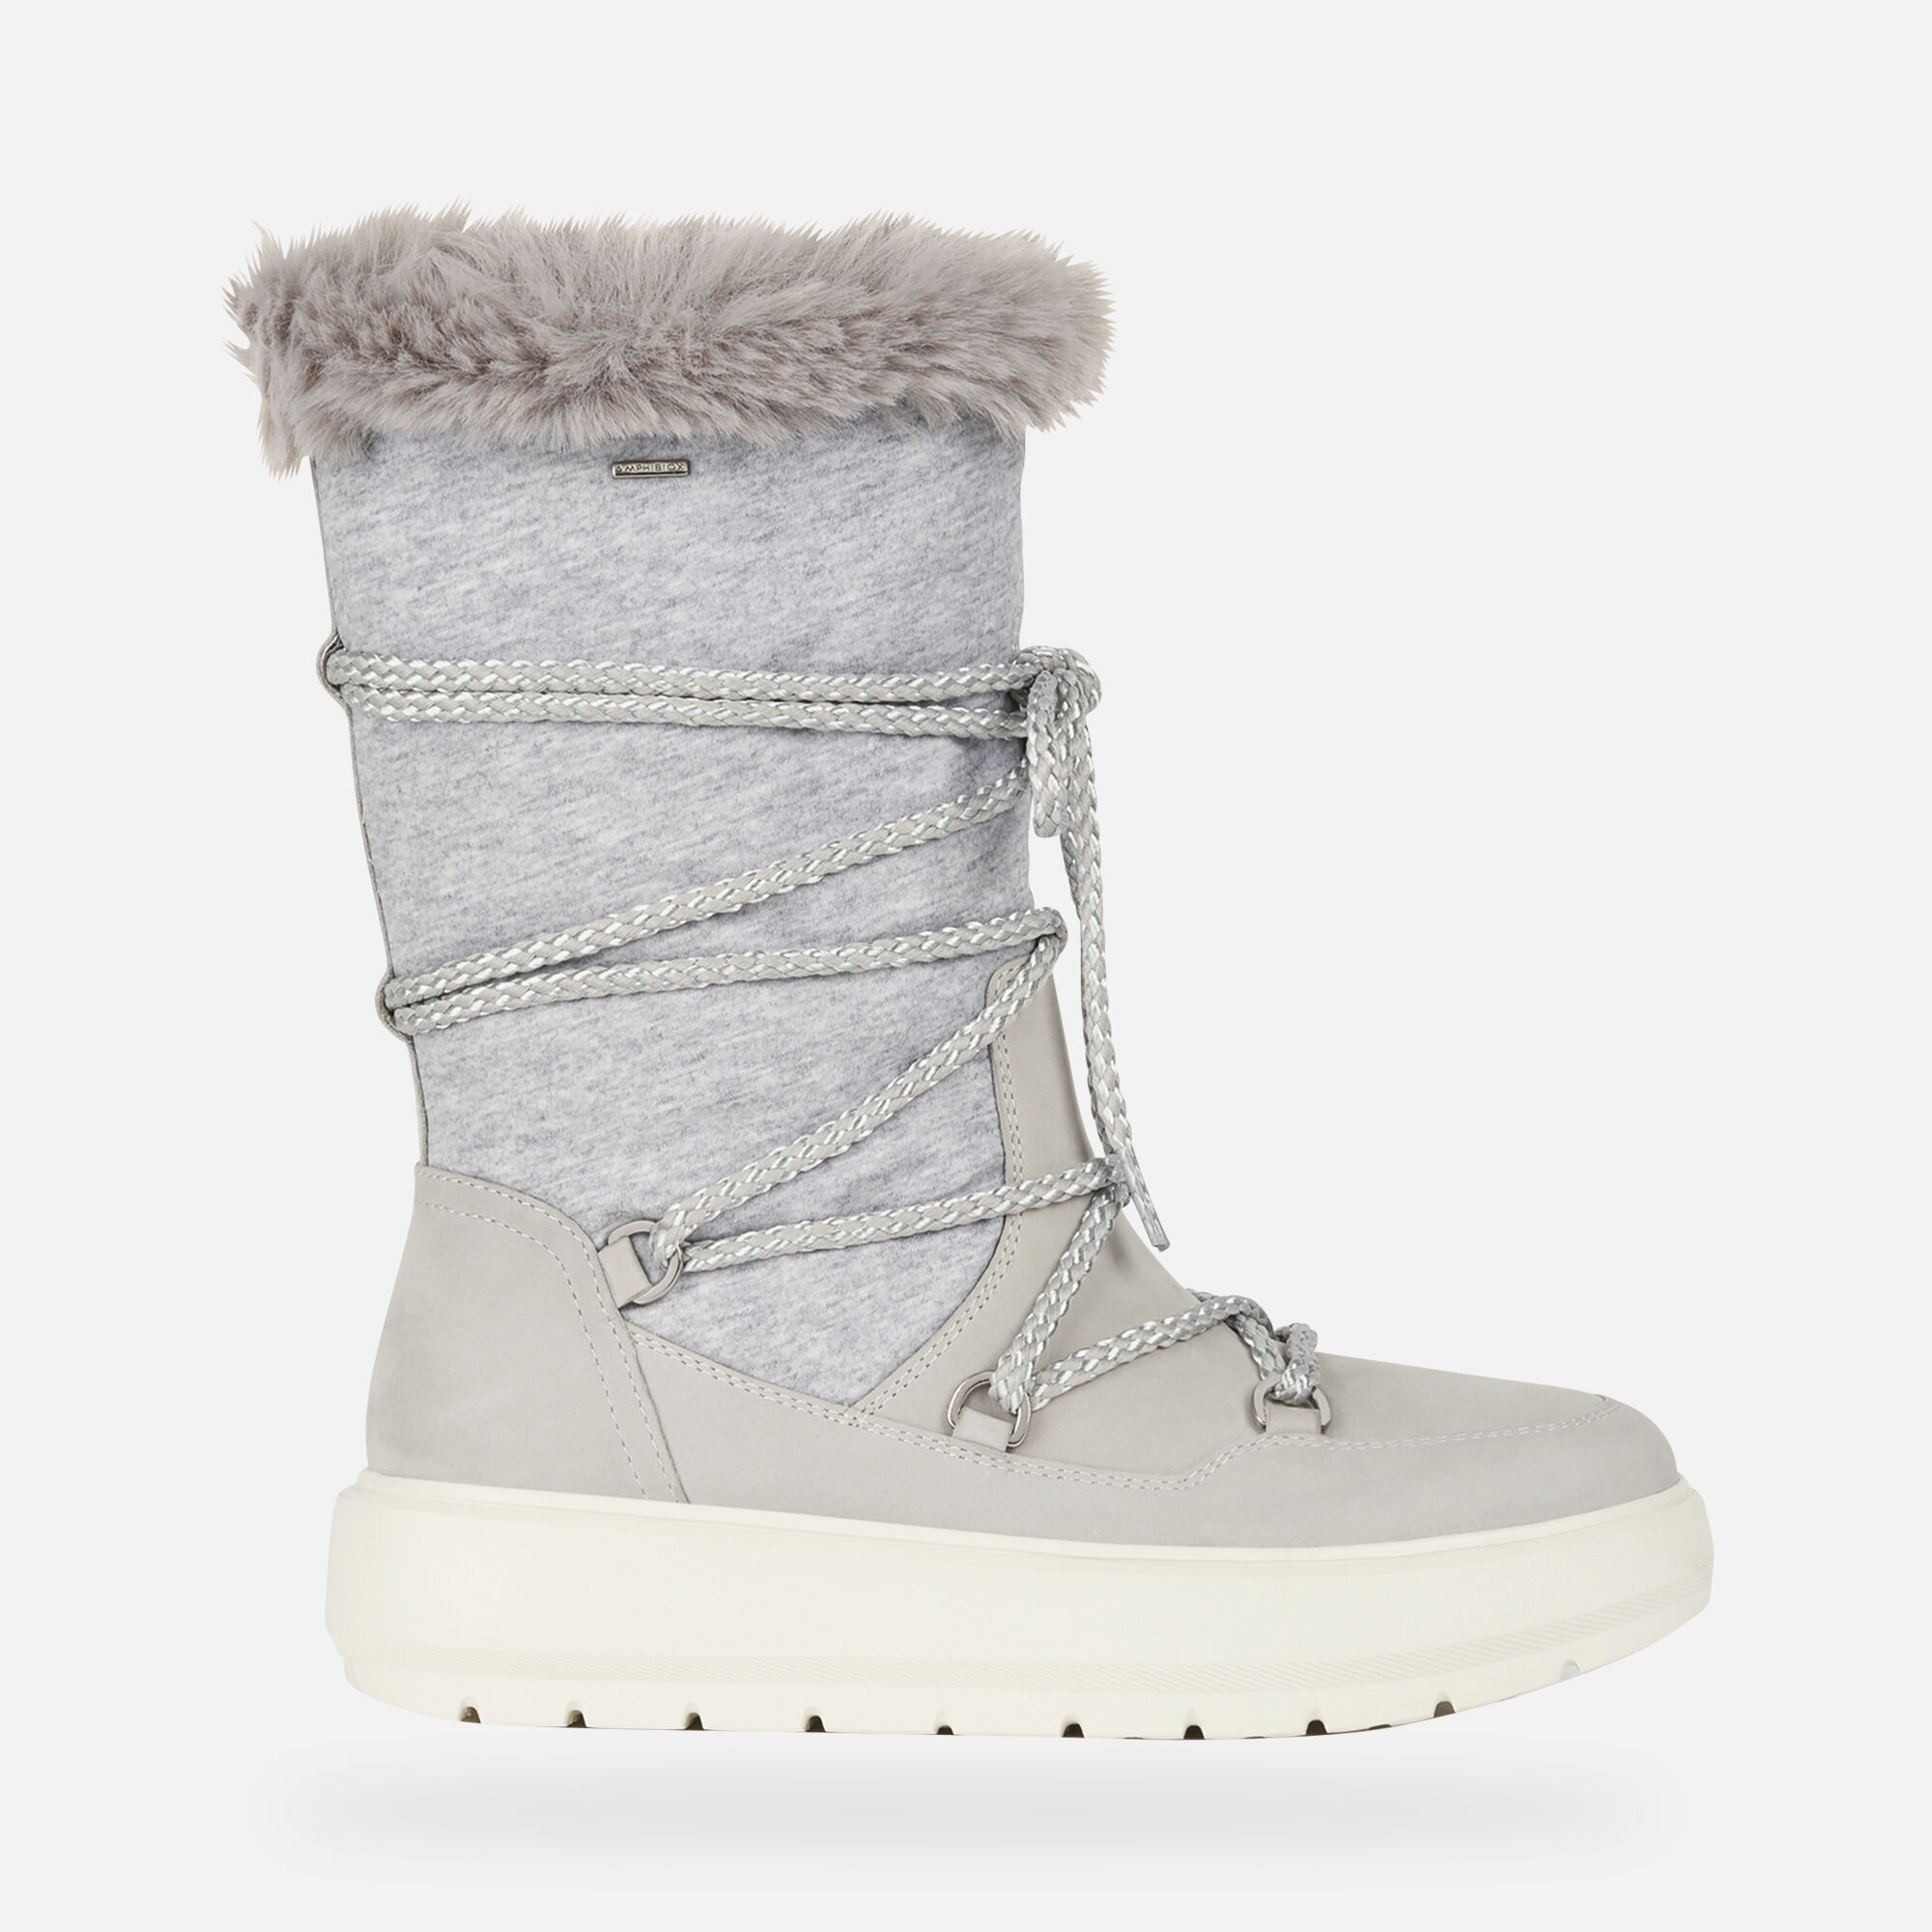 Geox KAULA B ABX Woman: Light grey Boots | Geox ® Official Store